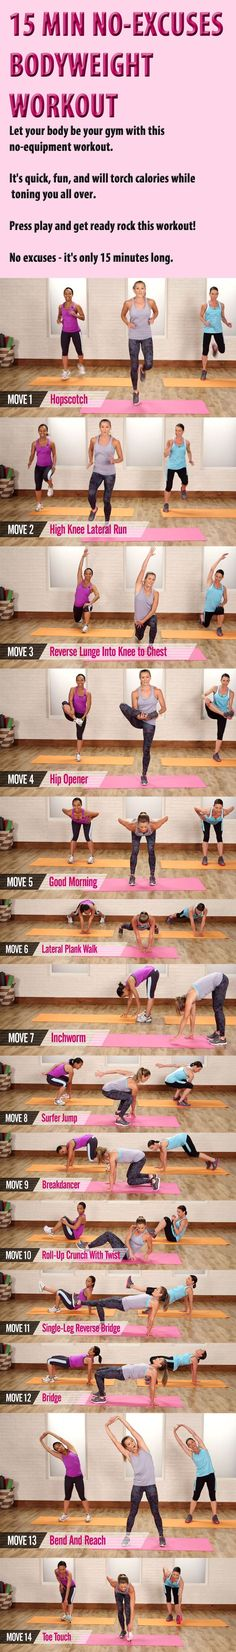 15- Minute No-Excuses Bodyweight Workout. #bodyweightworkout #noexcuses #muffintop #fatburn